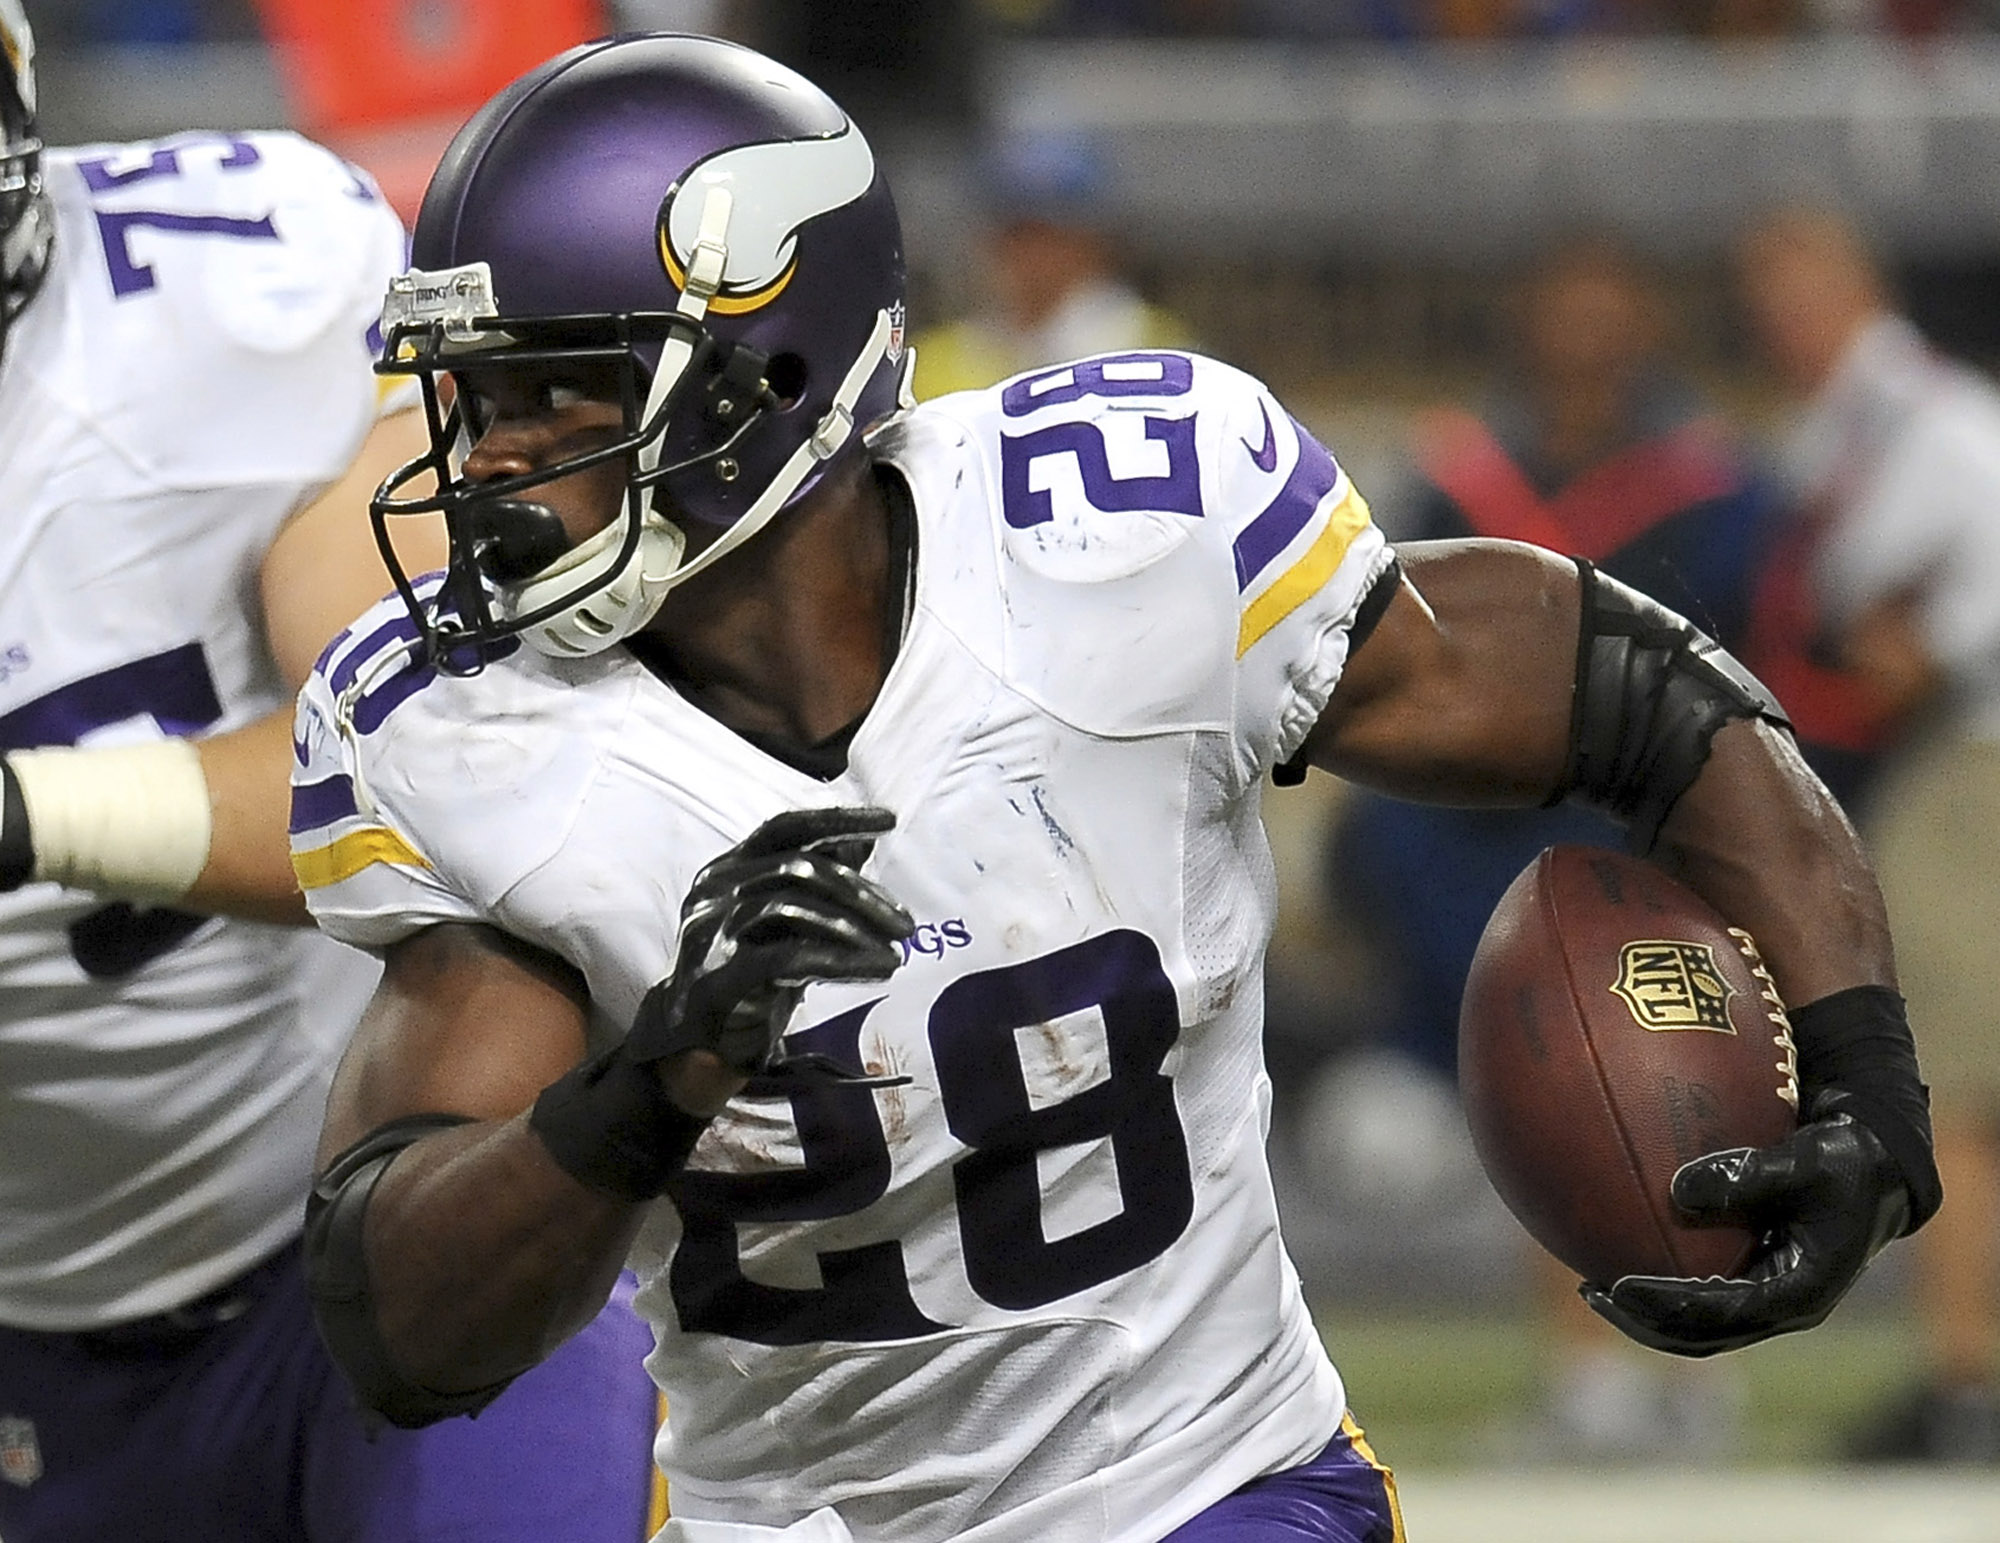 FILE - In this Sept. 7, 2014, file photo, Minnesota Vikings running back Adrian Peterson carries the ball agianst the St. Louis Rams during the third quarter an NFL football game in St. Louis. Peterson's return from the child abuse saga that sidelined him